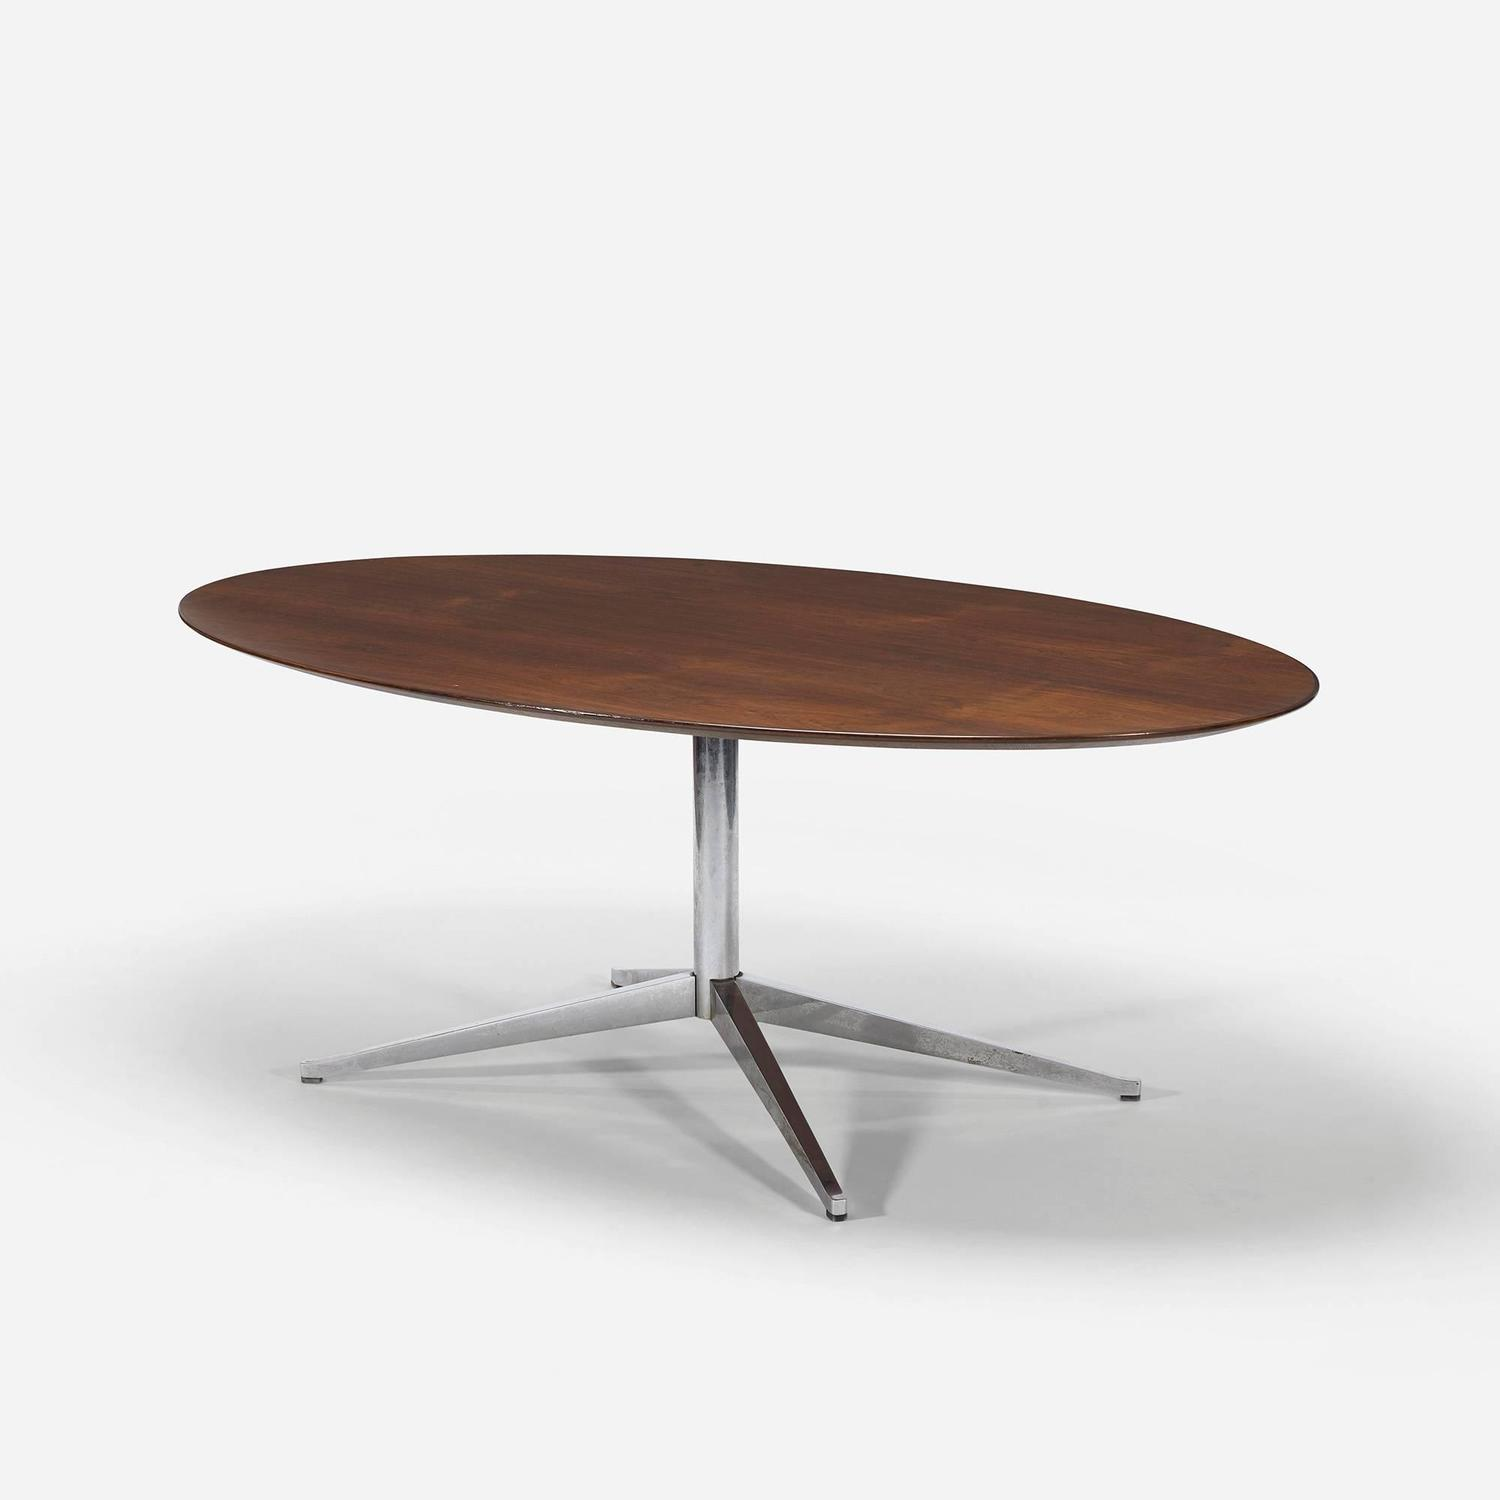 Dining table by florence knoll for knoll associates at 1stdibs for Knoll associates